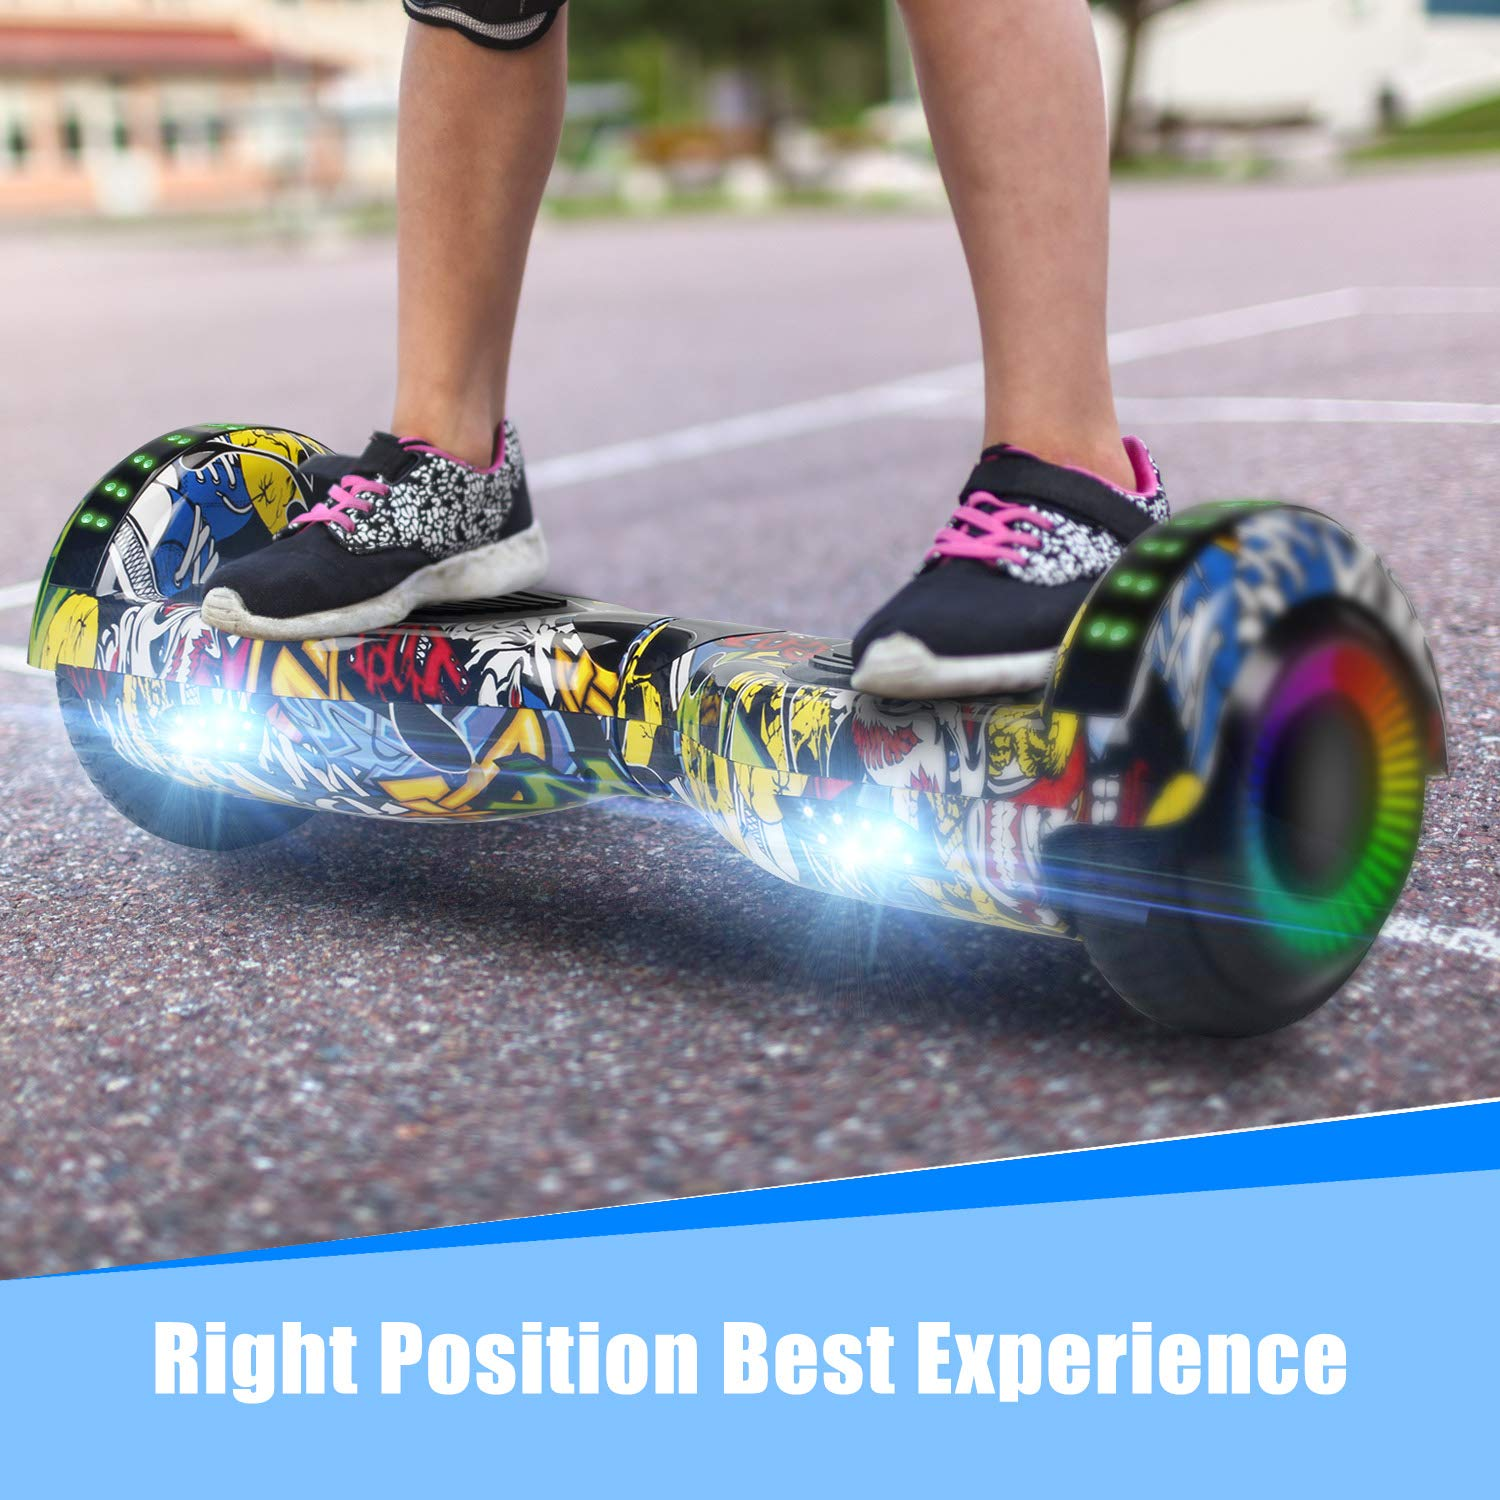 SWEETBUY Hoverboard Two-Wheel Self Balancing Electric Scooter UL 2272 Certified,6.5 inch Self Balancing Scooter with Carry Bag by SWEETBUY (Image #7)